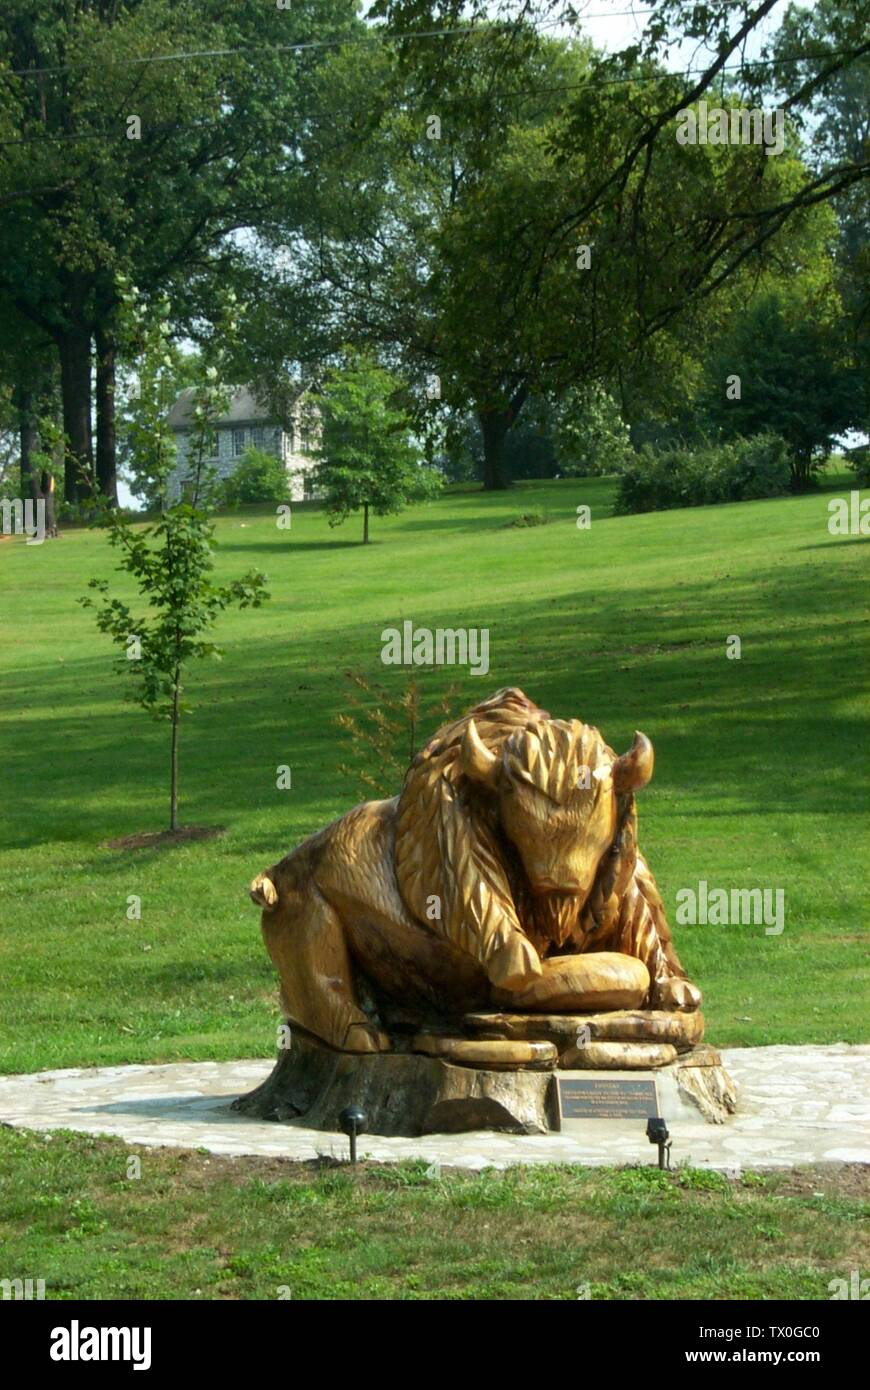 20 05 2007 High Resolution Stock Photography And Images Alamy